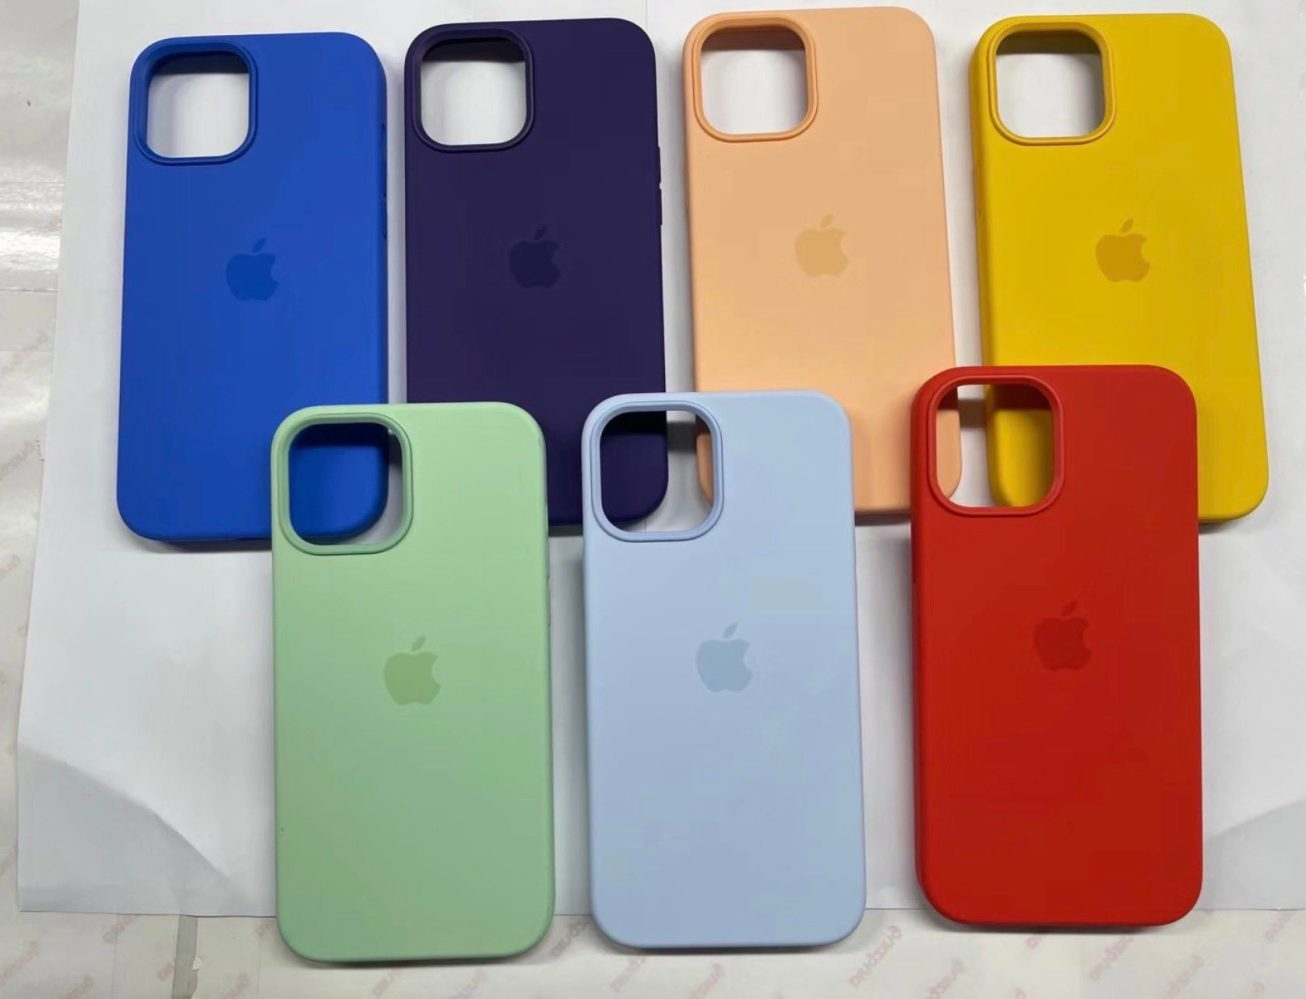 Leaked photos reveal more new colors for Spring iPhone 12 MagSafe cases